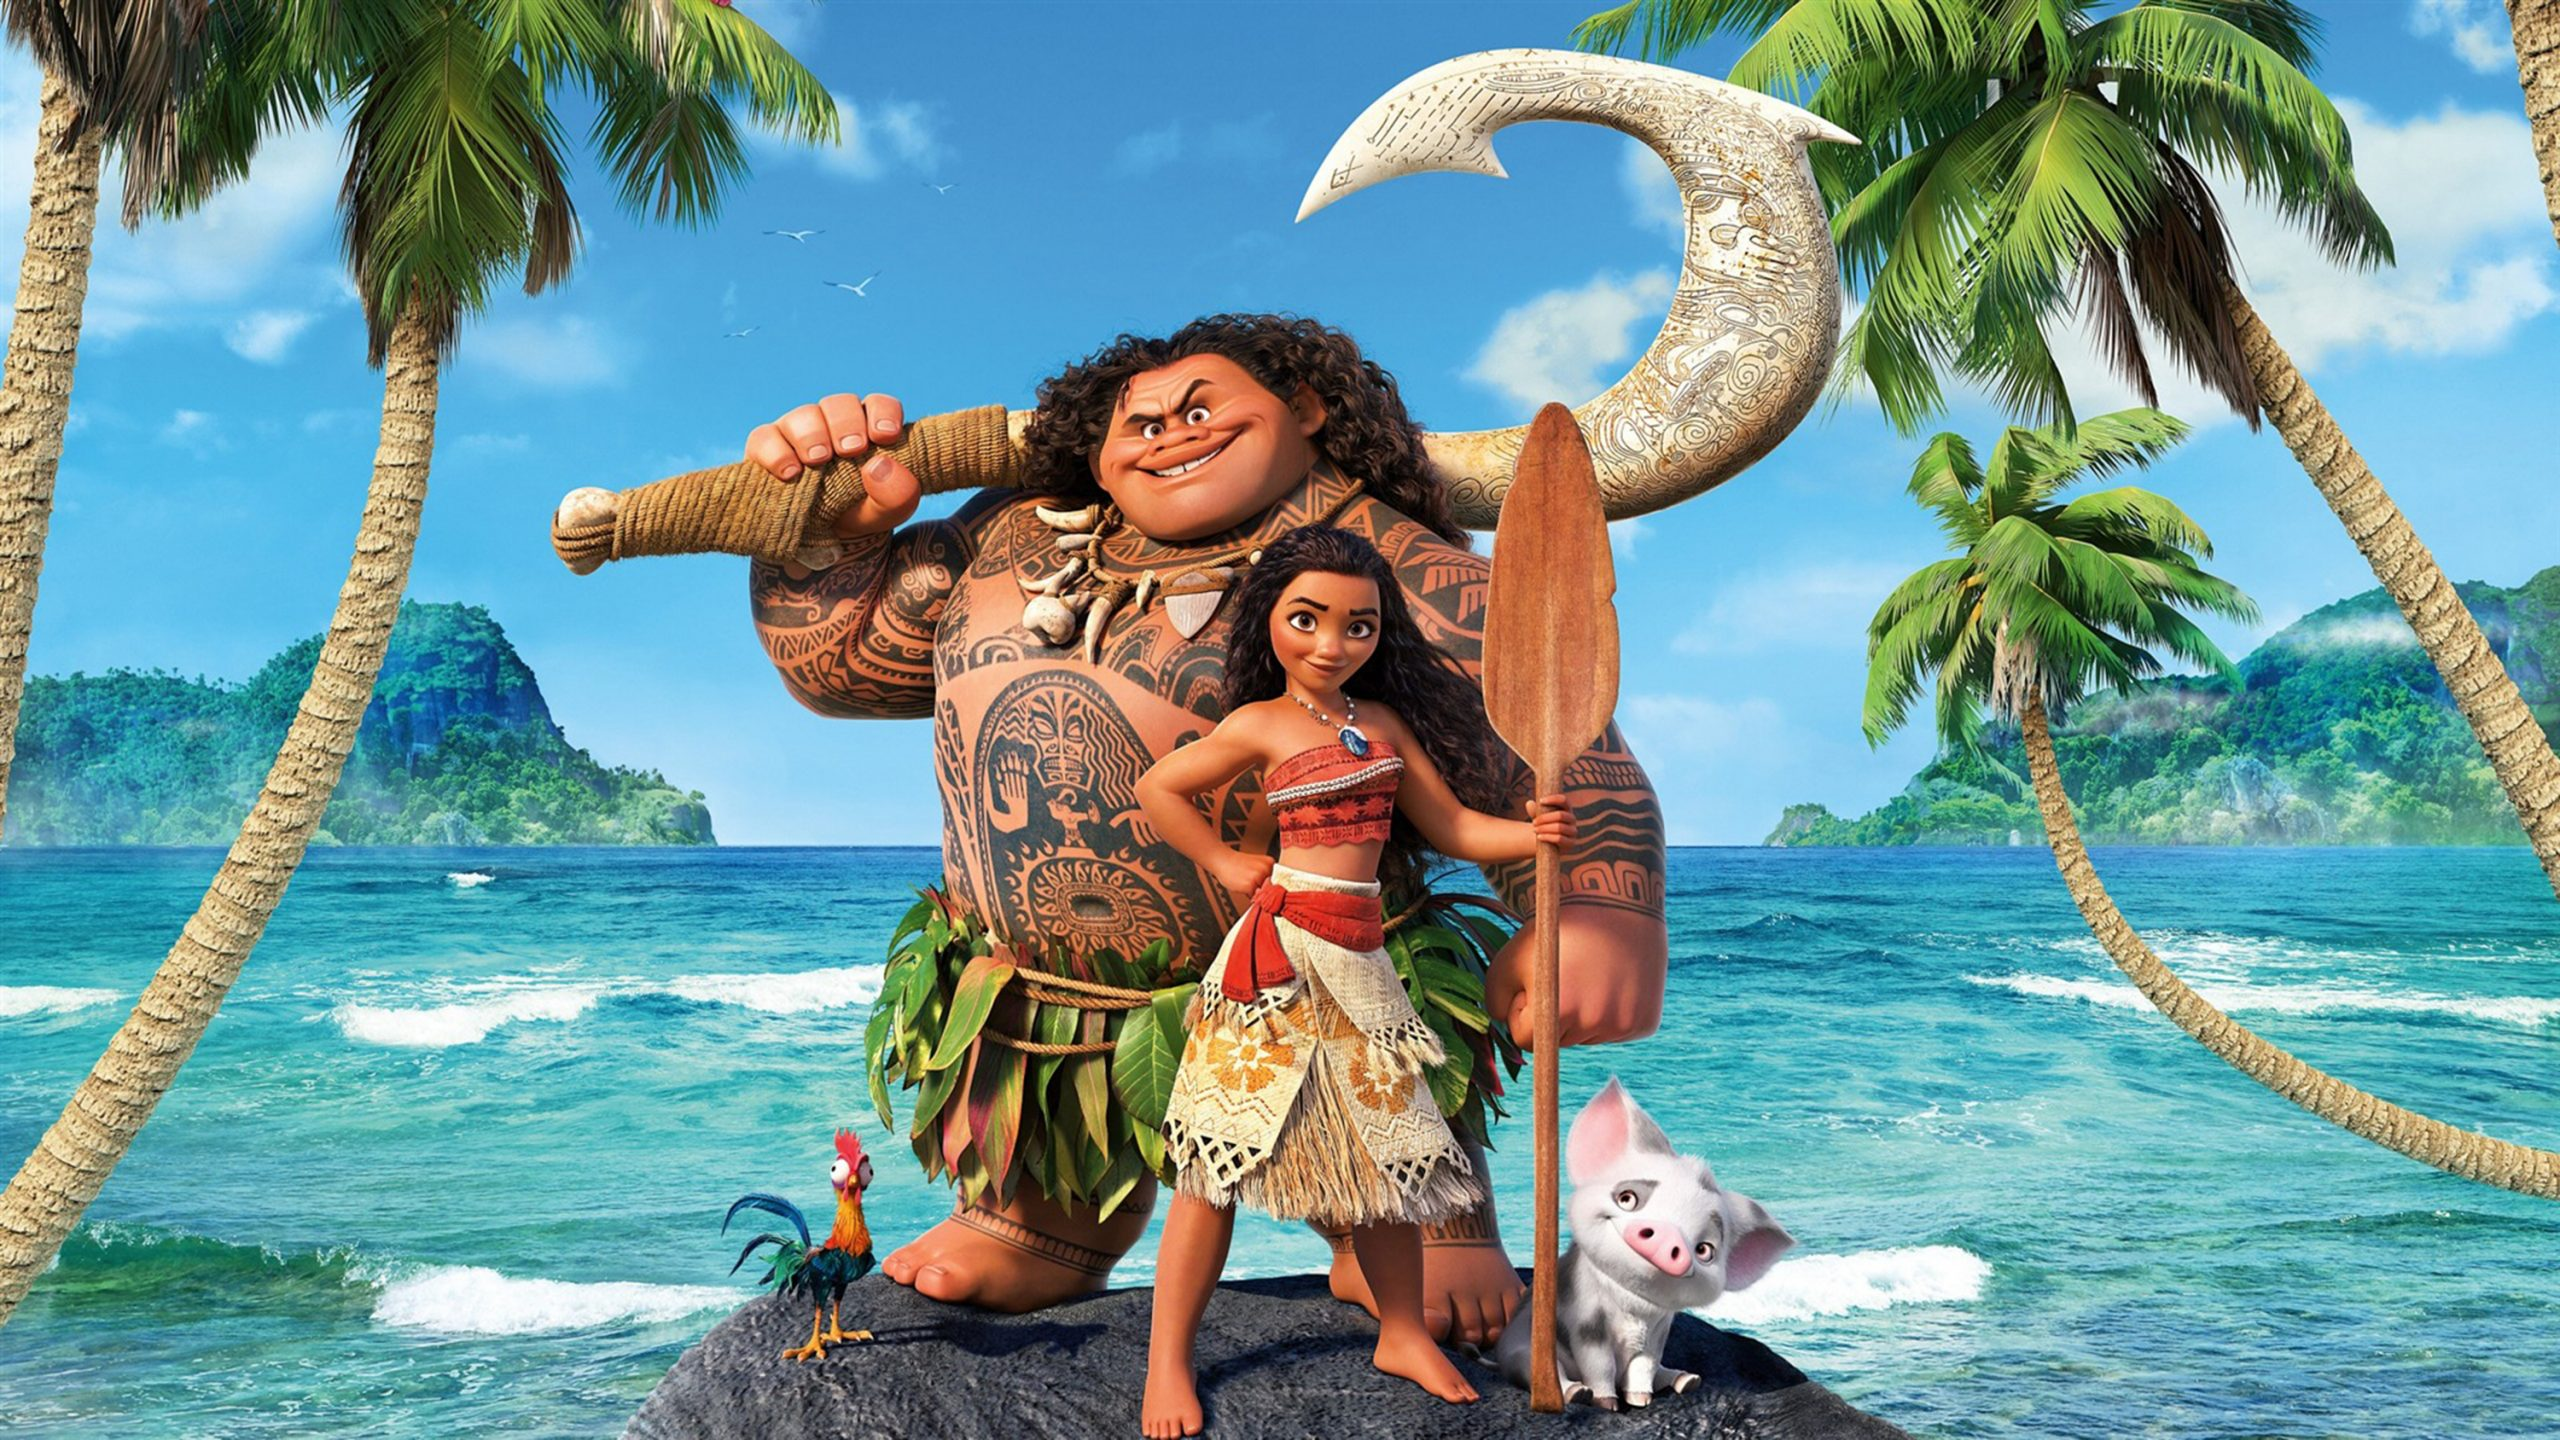 Live @ the MACC's Free Drive-In Featuring Disney Film 'Moana' April 9, 10 & 11